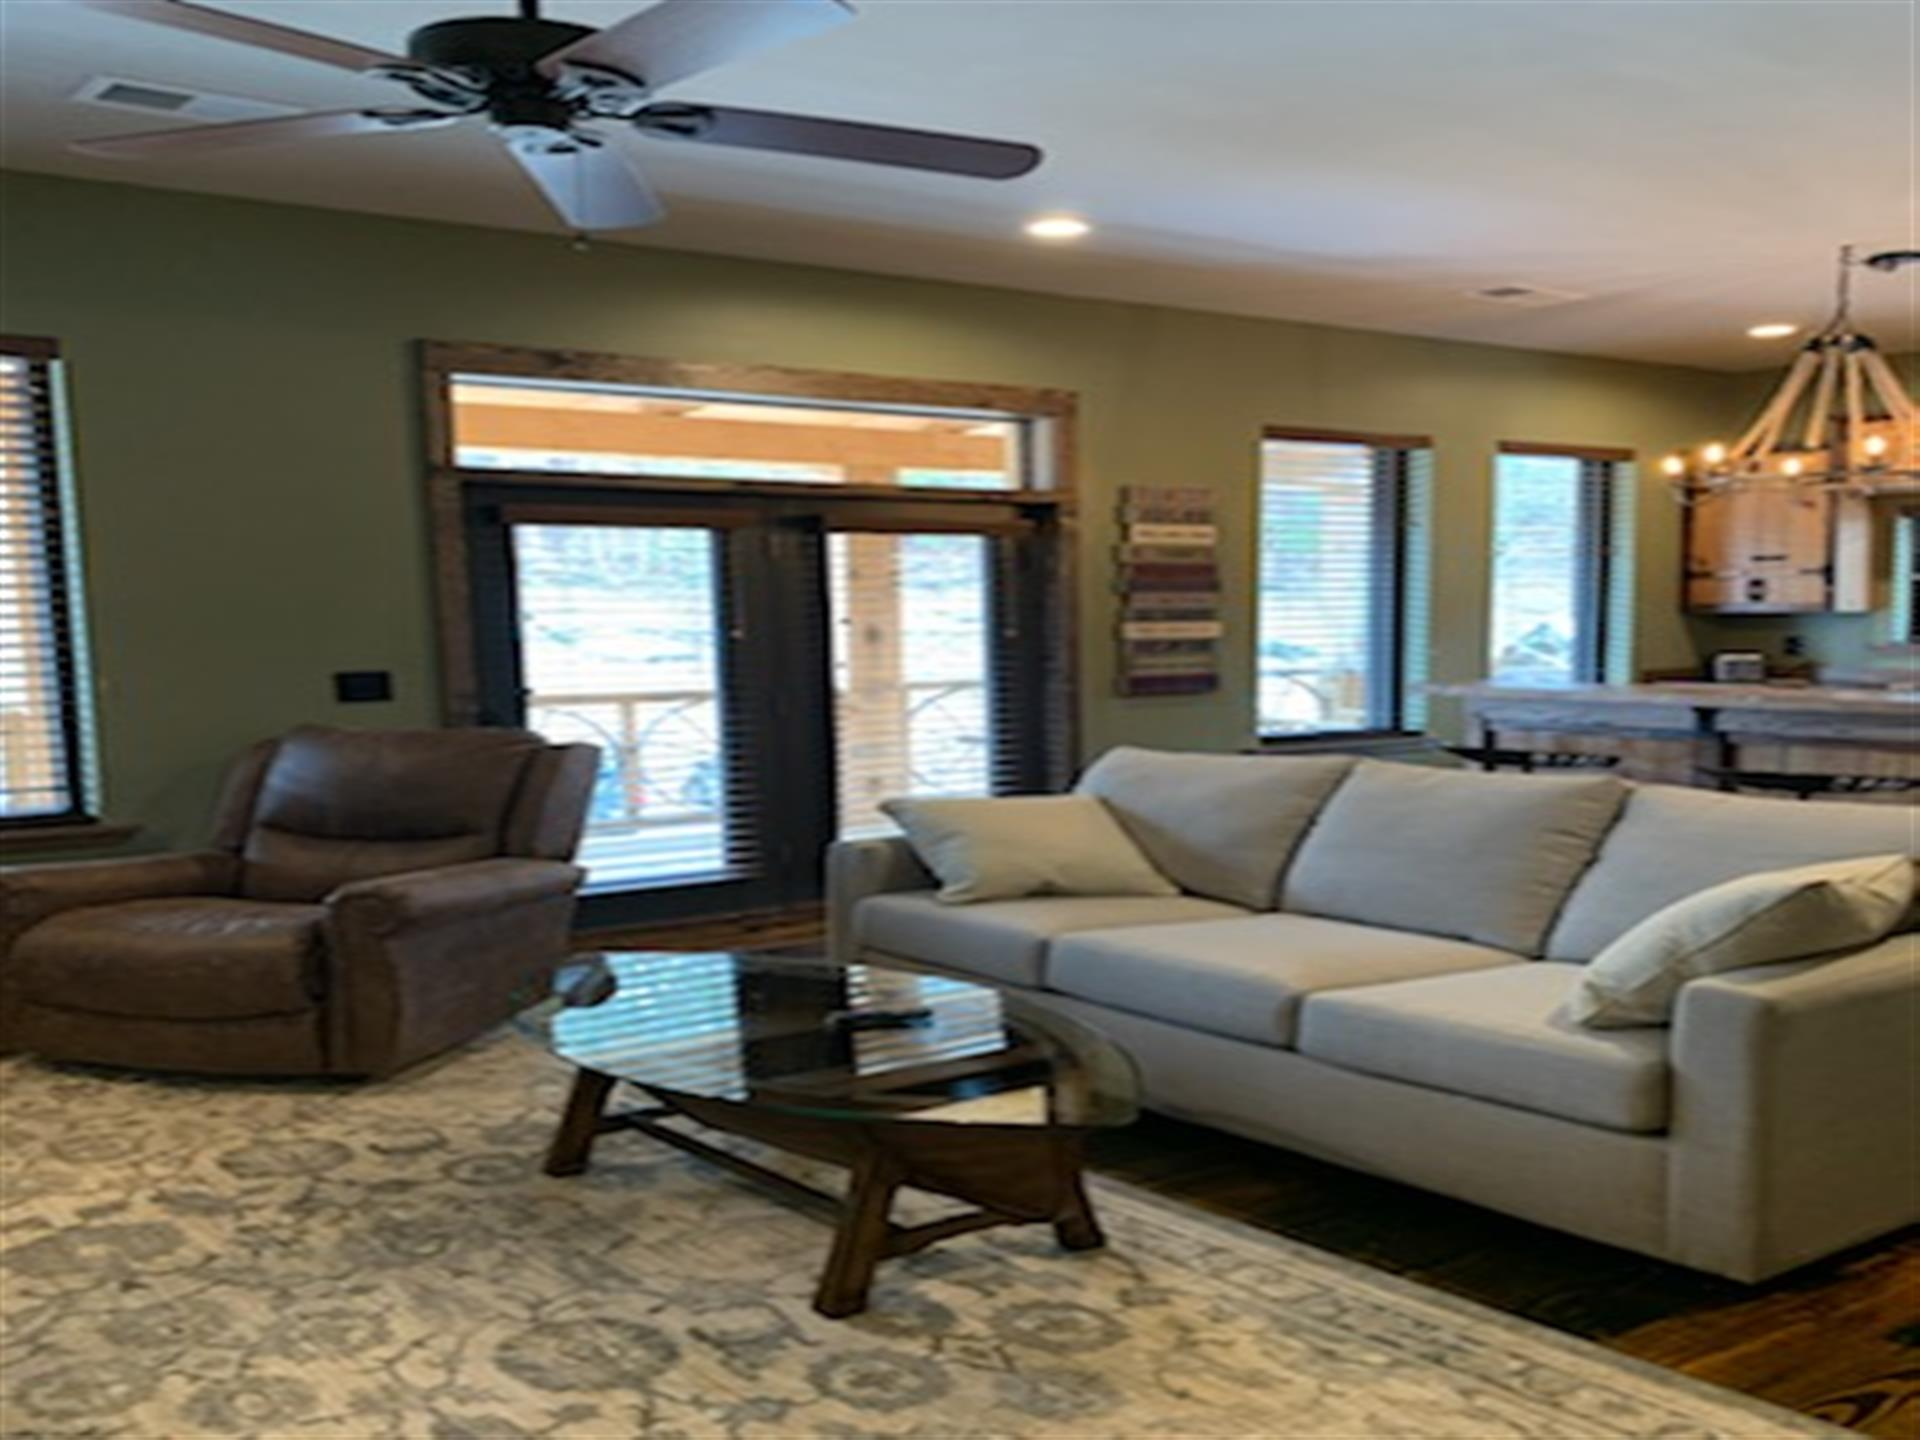 couch and single seat couch with glass table in front, ceiling fan above, doors and windows in background.